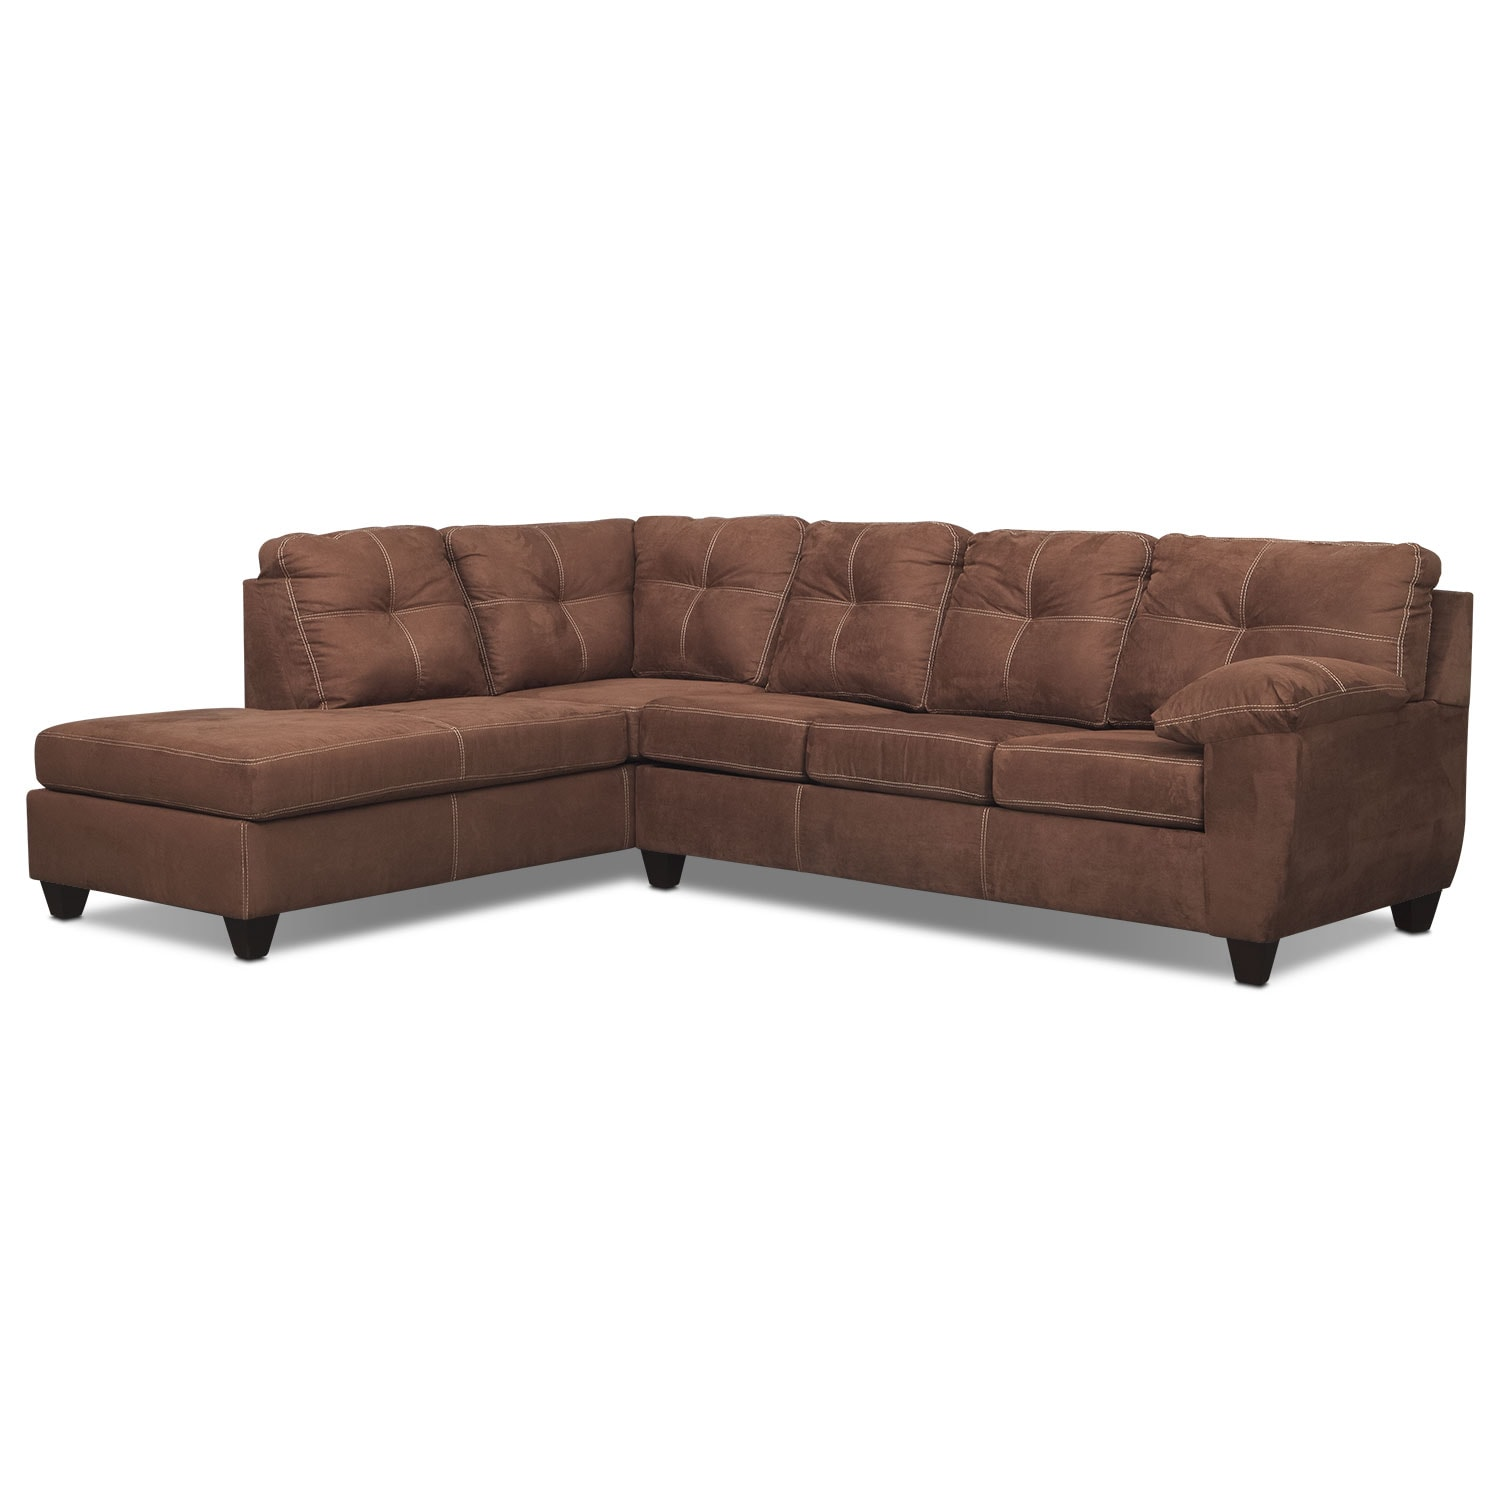 Rialto 2-Piece Innerspring Sleeper Sectional with Left-Facing Chaise - Coffee